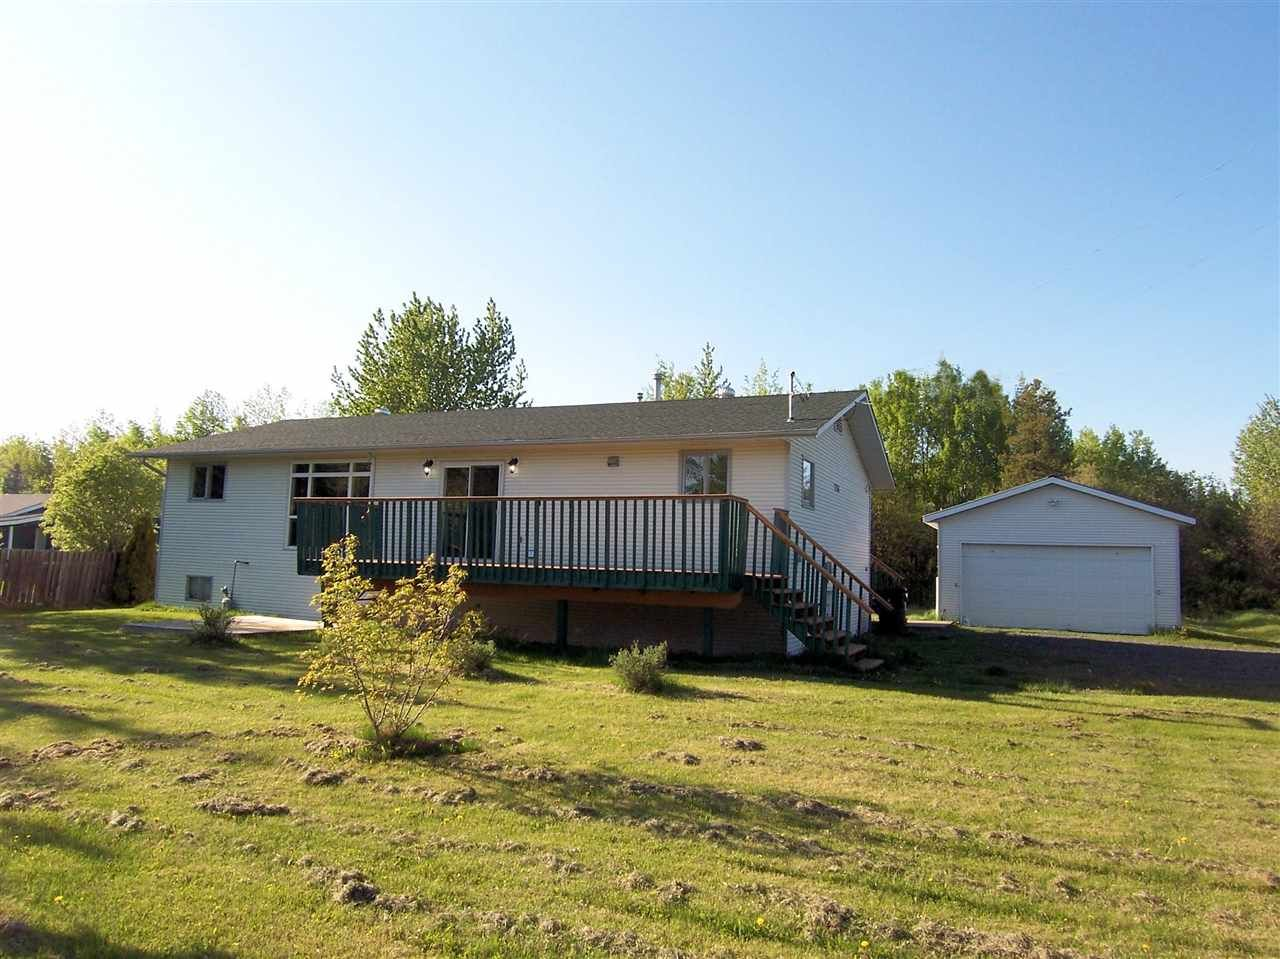 """Main Photo: 7738 GISCOME Road in Prince George: North Blackburn House for sale in """"BLACKBURN/GISCOME RD"""" (PG City South East (Zone 75))  : MLS®# R2069180"""